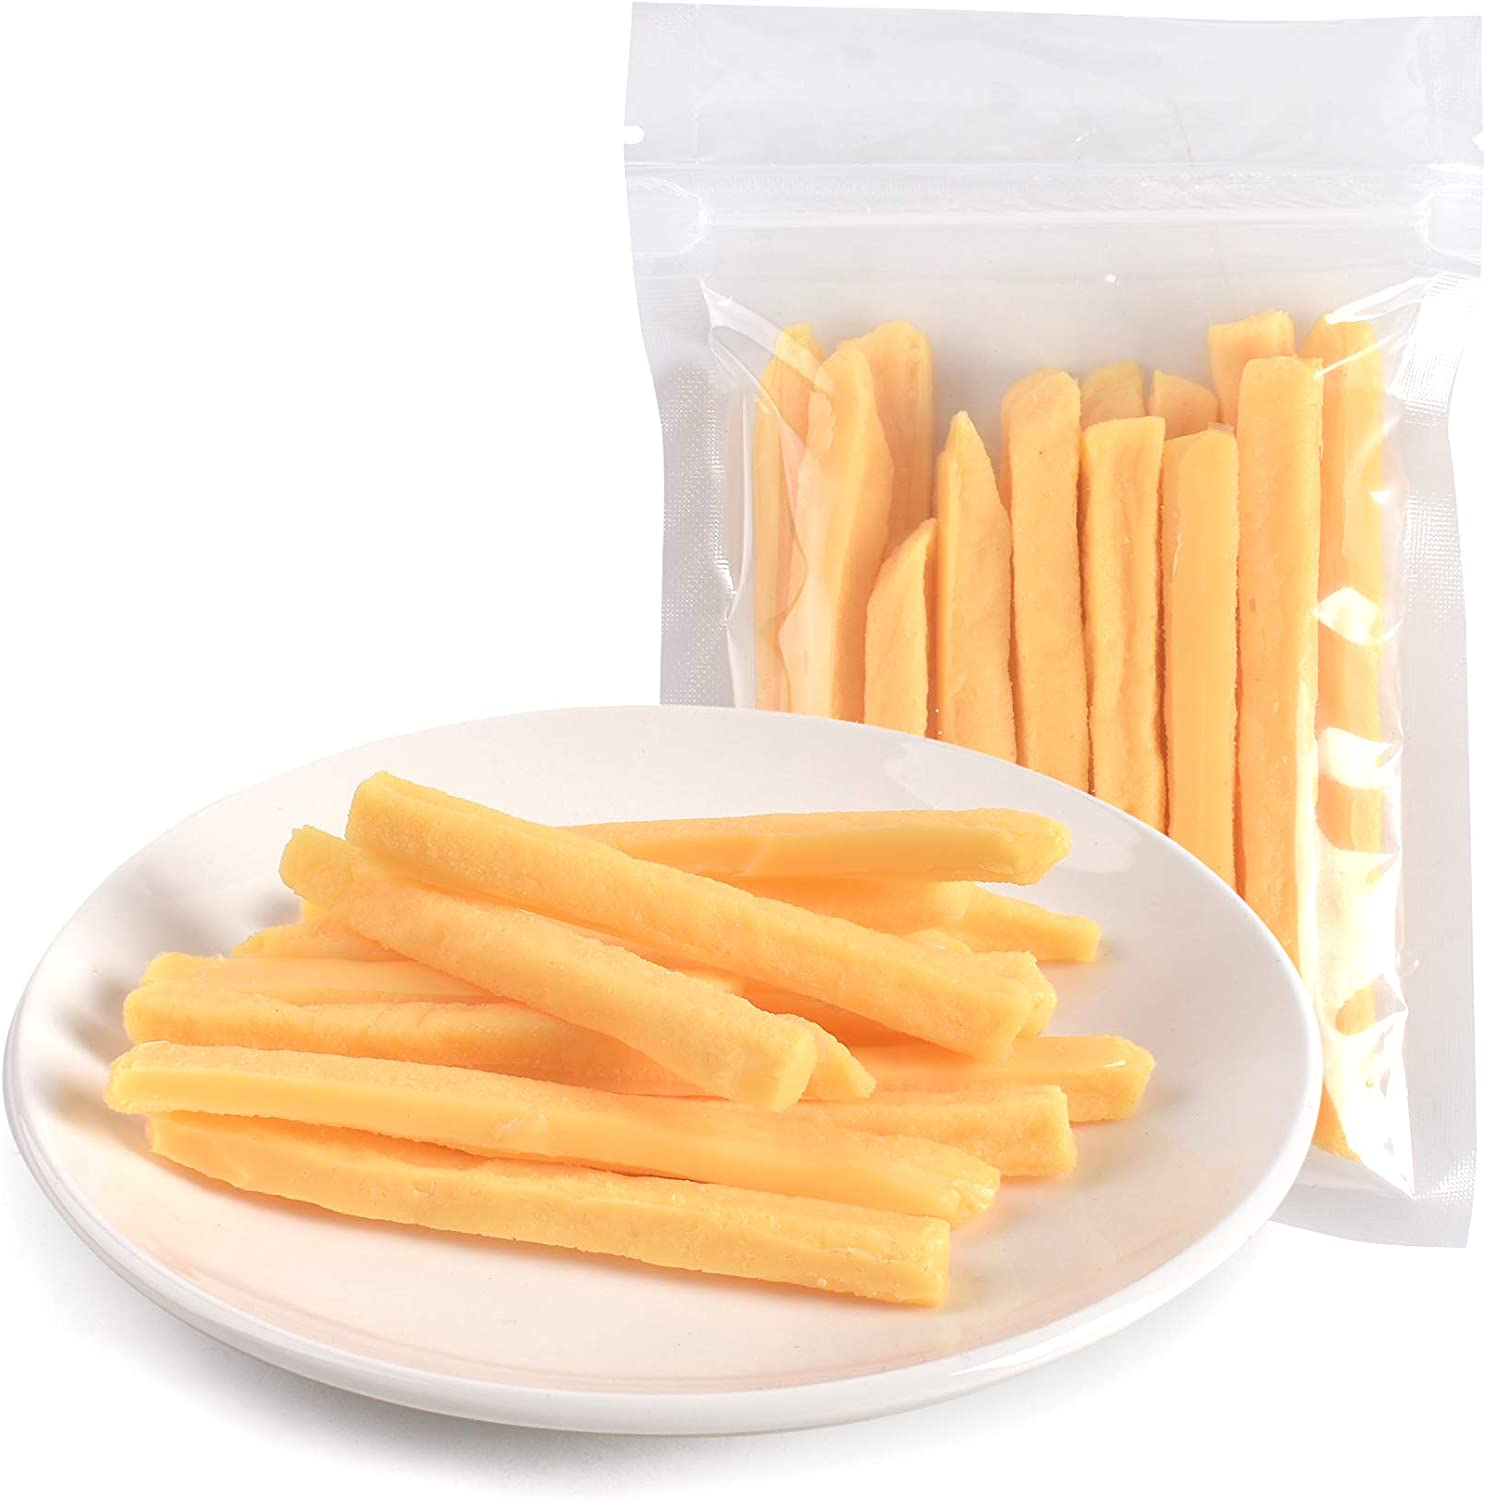 Hagao Fake French Fries Simulation Artificial Food Play Food Model Kitchen Toy Decoration 15 pcs